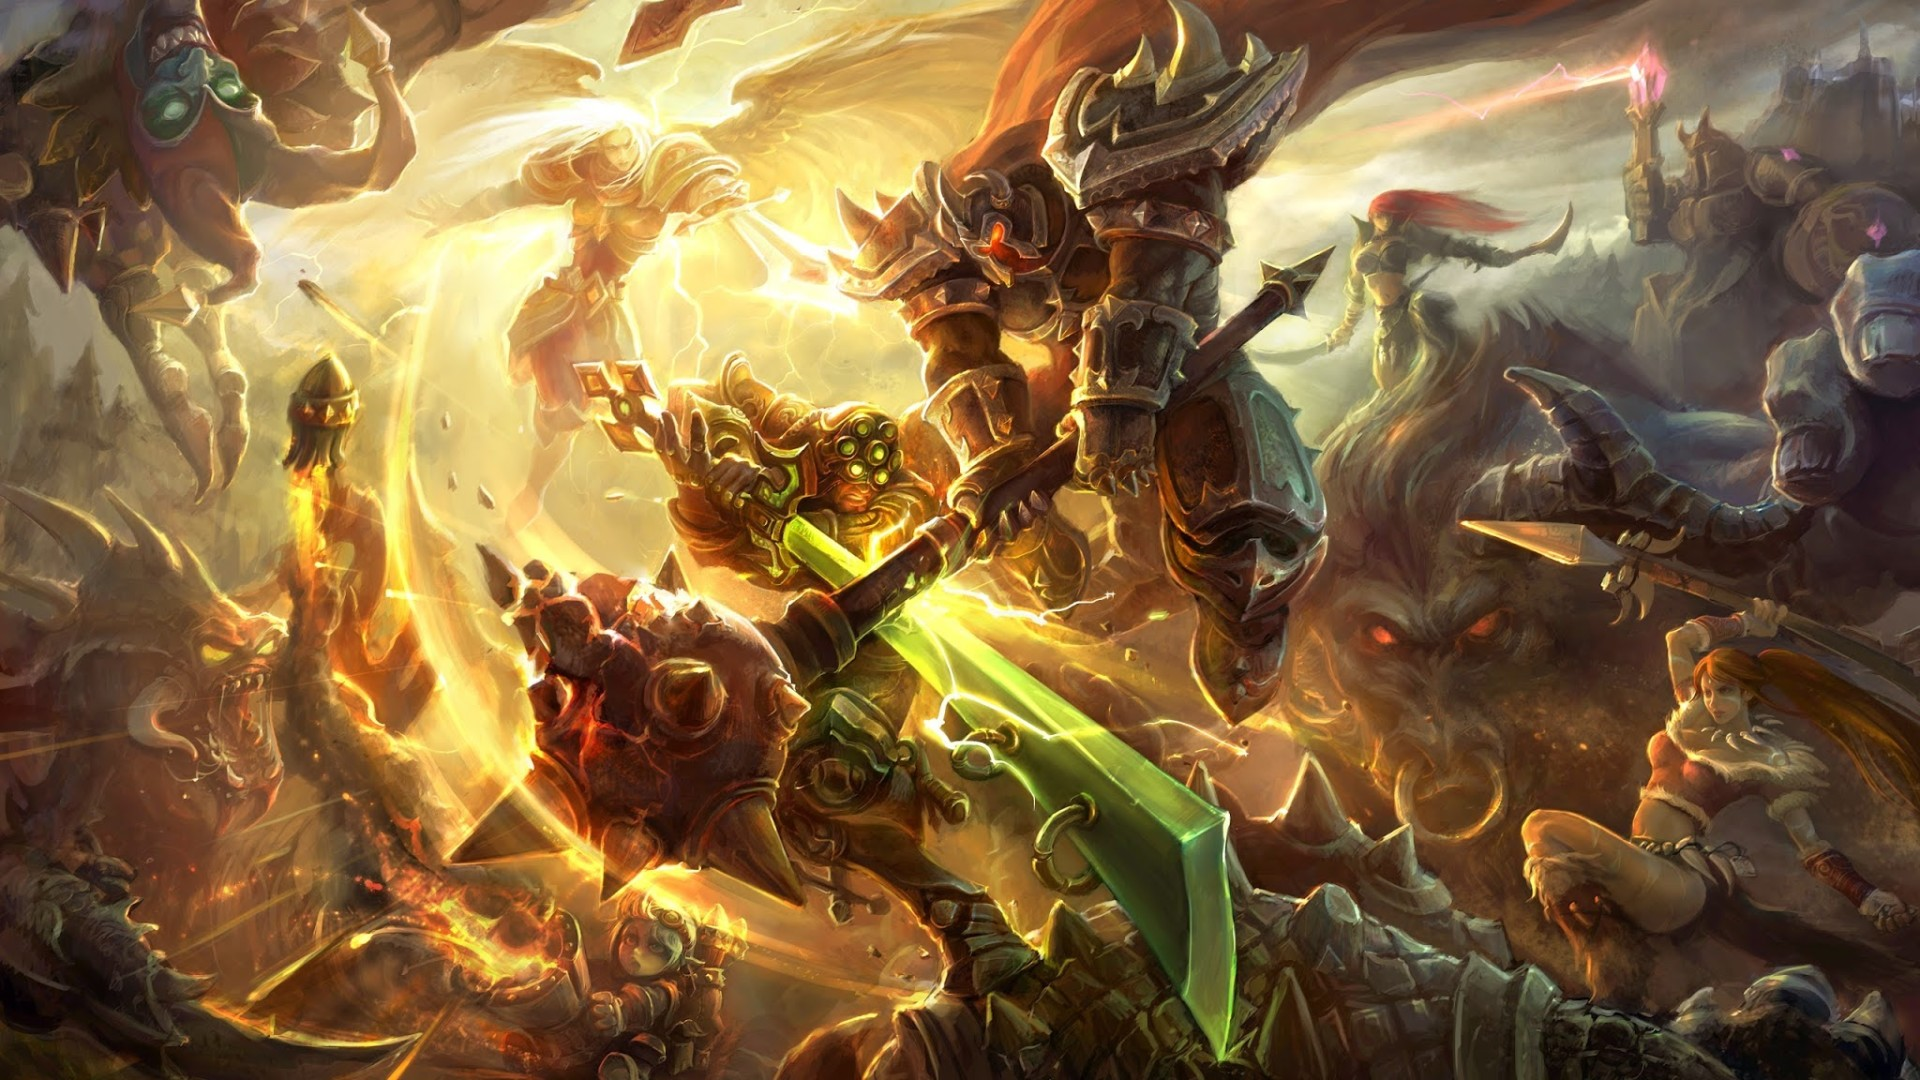 Tres estrategias para Teamfight Tactics, el modo furor de League of Legends